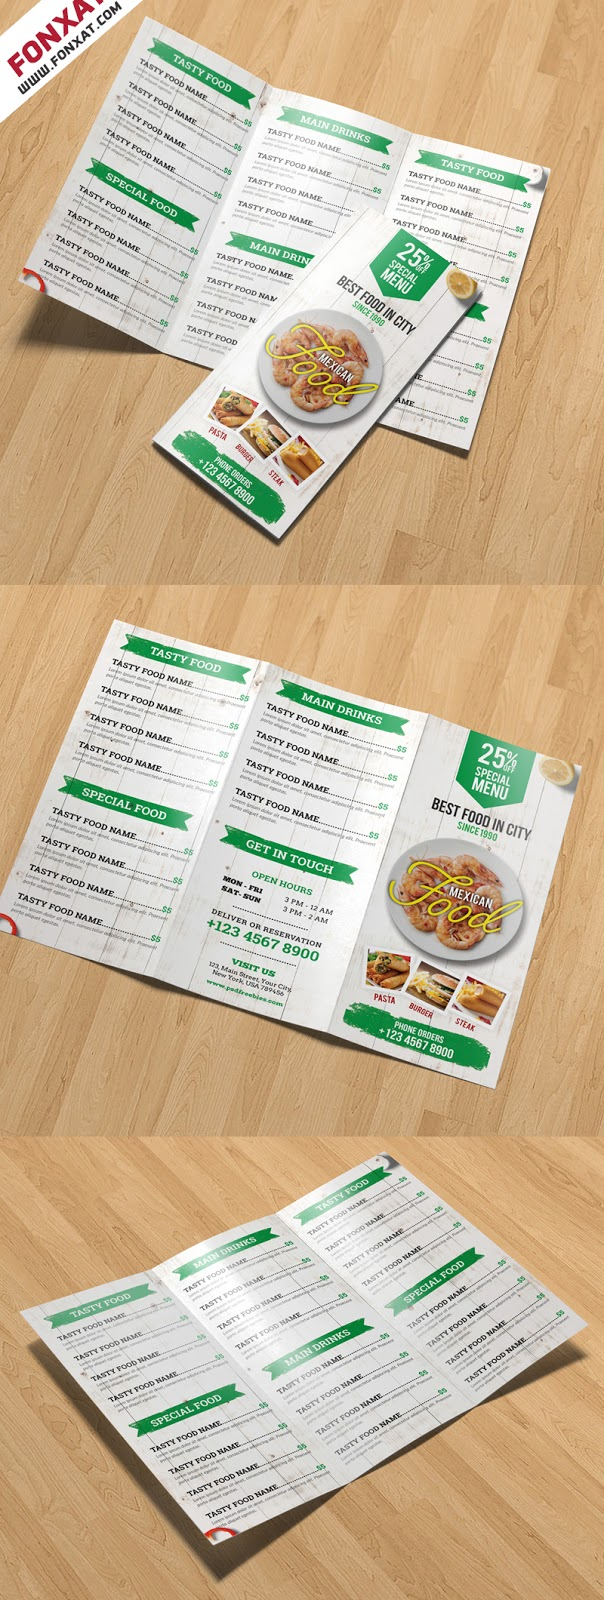 Restaurant-Menu-TriFold-Brochure-PSD-Template